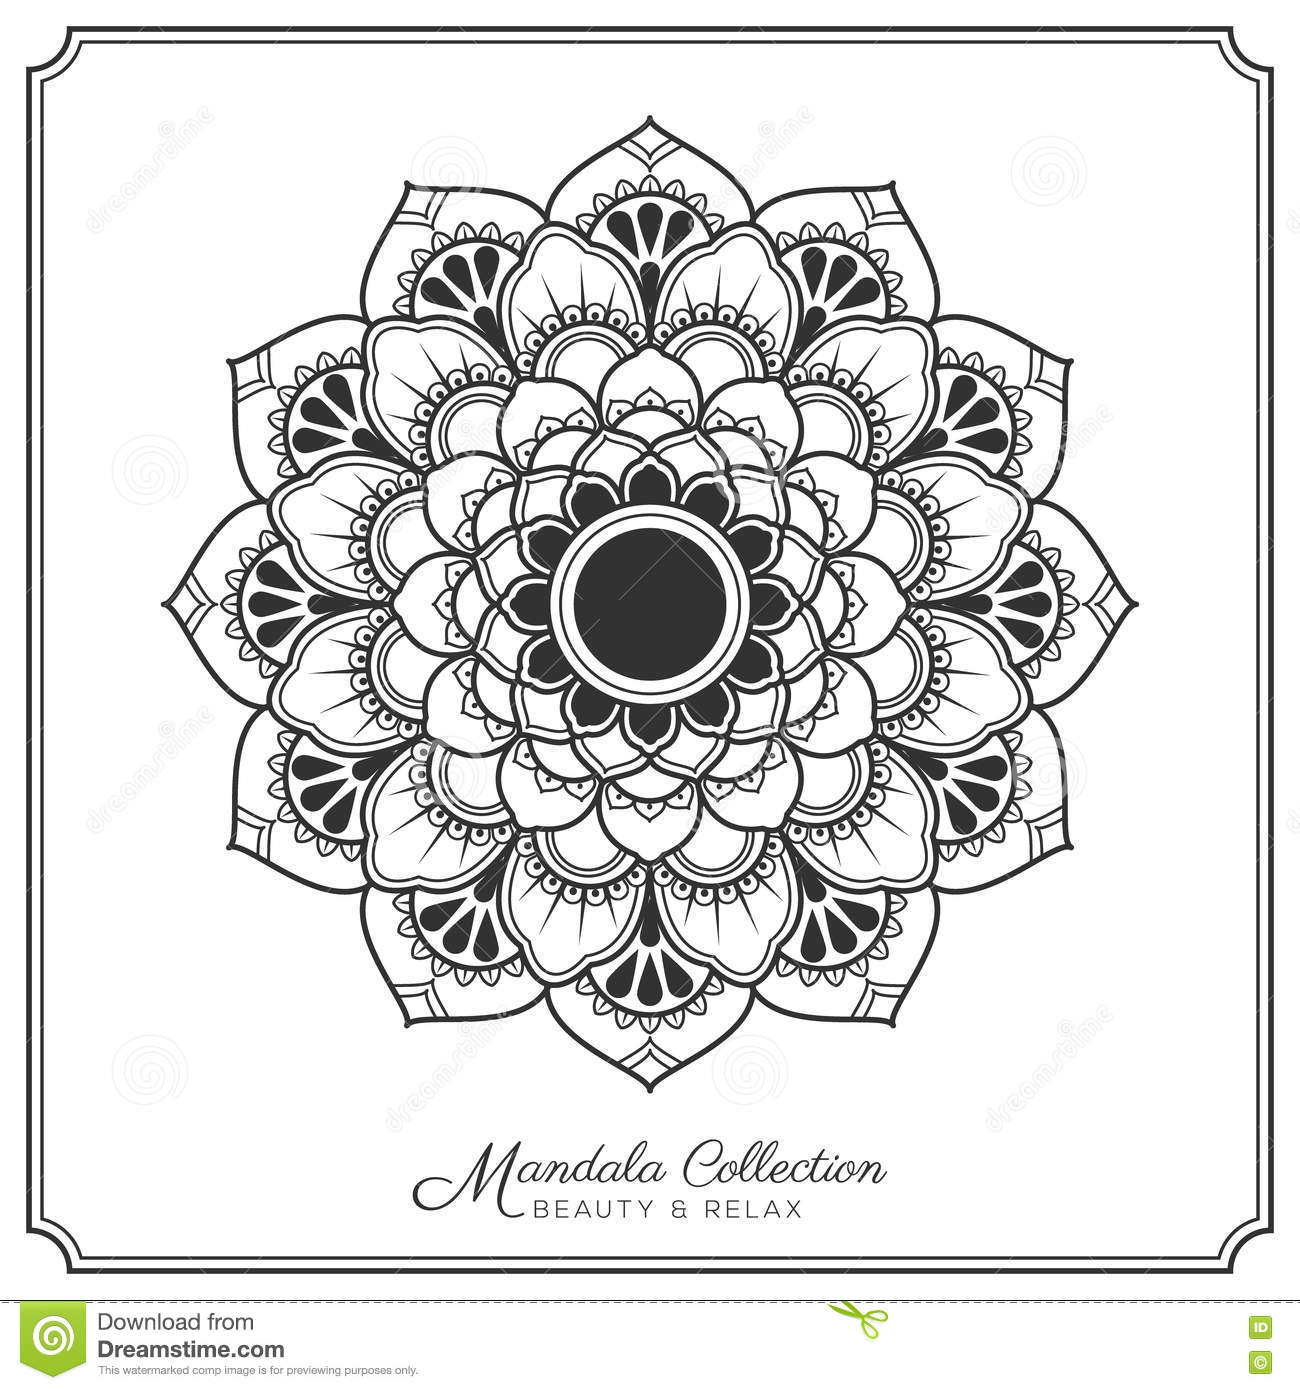 22 Mandala Tattoo Designs Ideas: 45+ Best Mandala Tattoos Designs